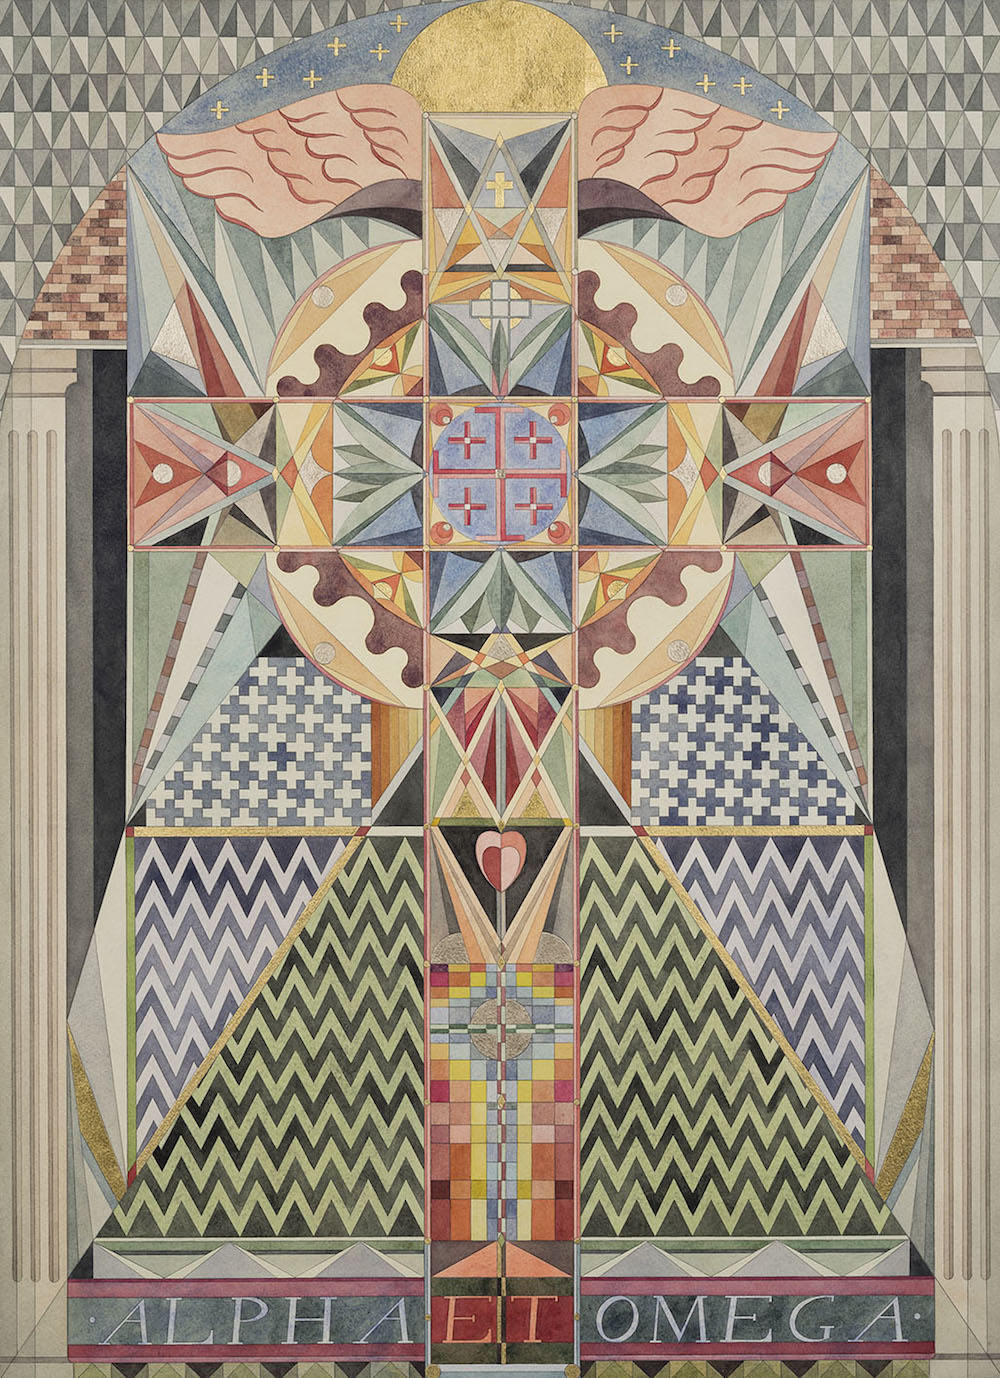 Fredrik Söderberg, Alpha et Omega, 2015, watercolour and gold leaf on paper, 75 x 54 cm